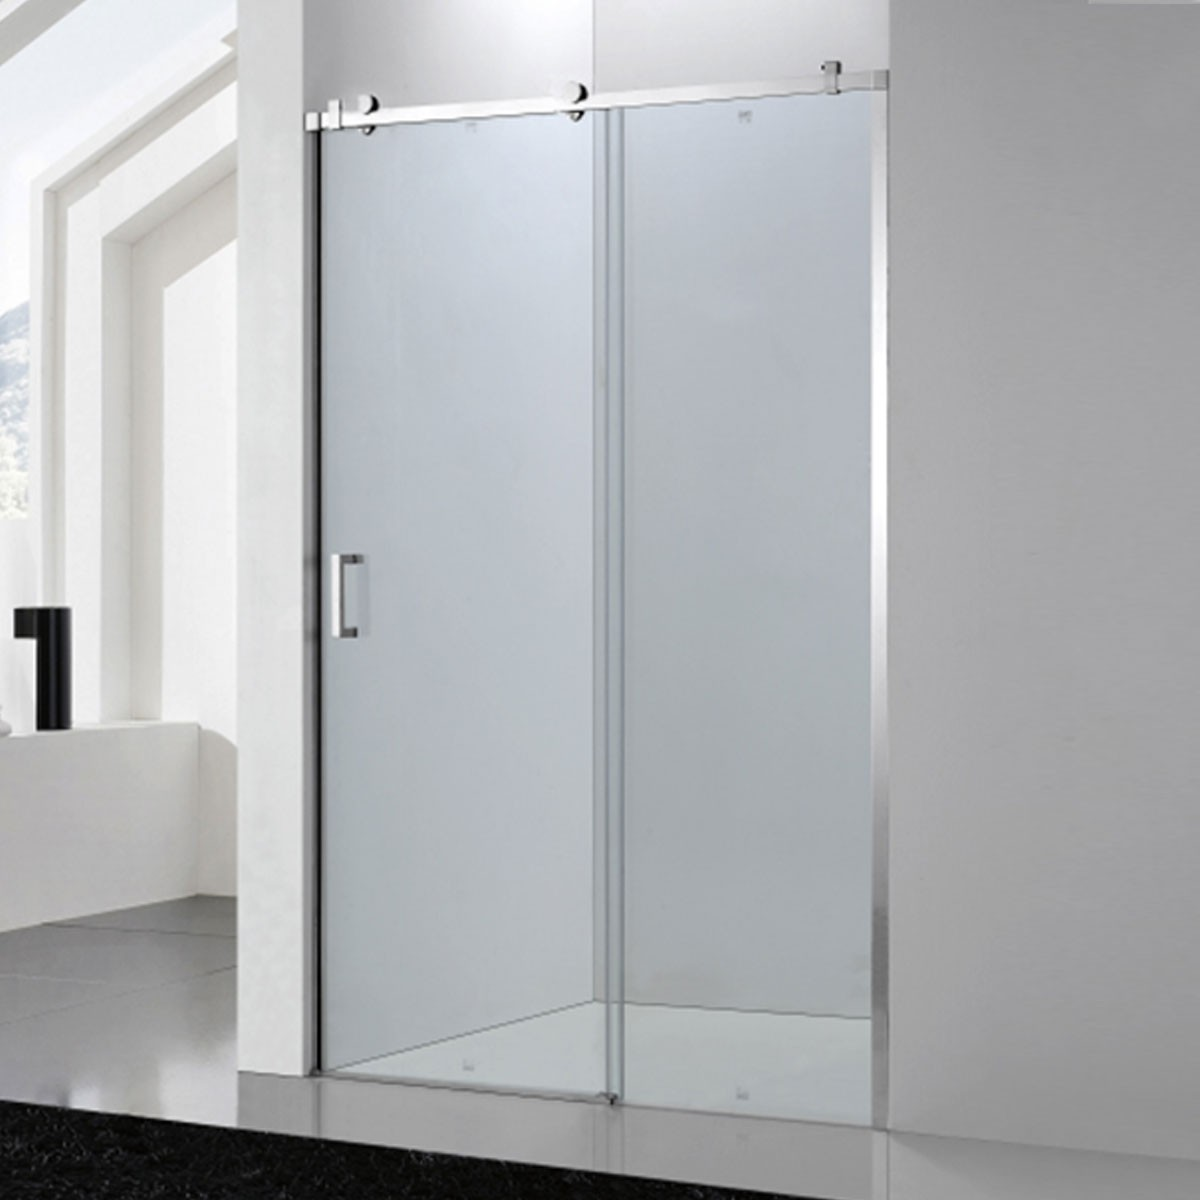 60 In. Sliding Shower Door with Wheels for Alcove Installation (DK-SC028)